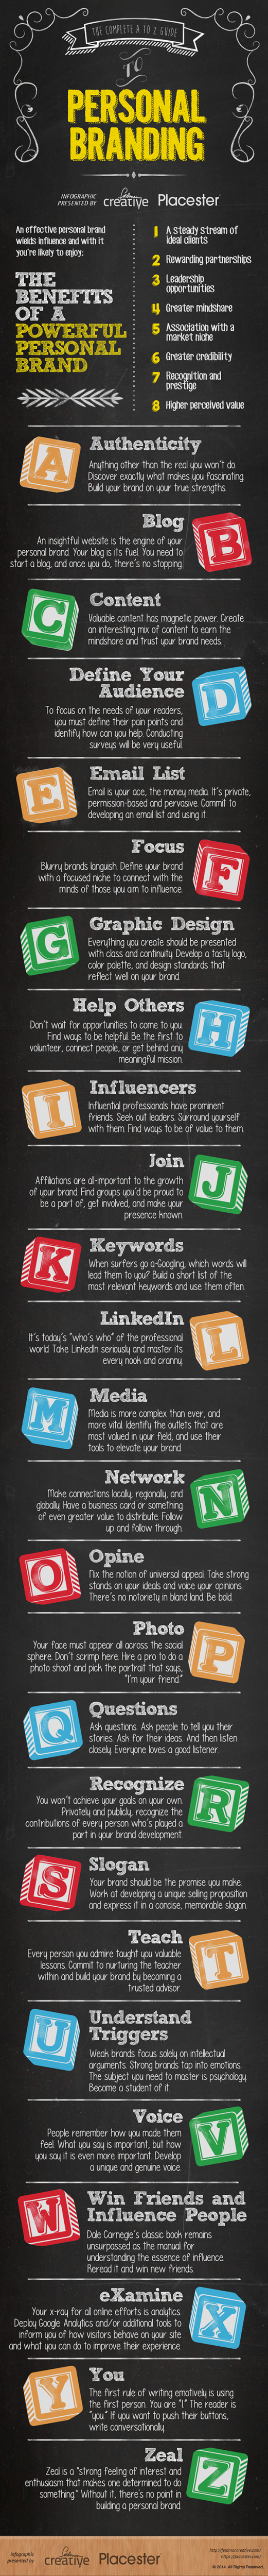 How to Define Your Personal Brand Infographic